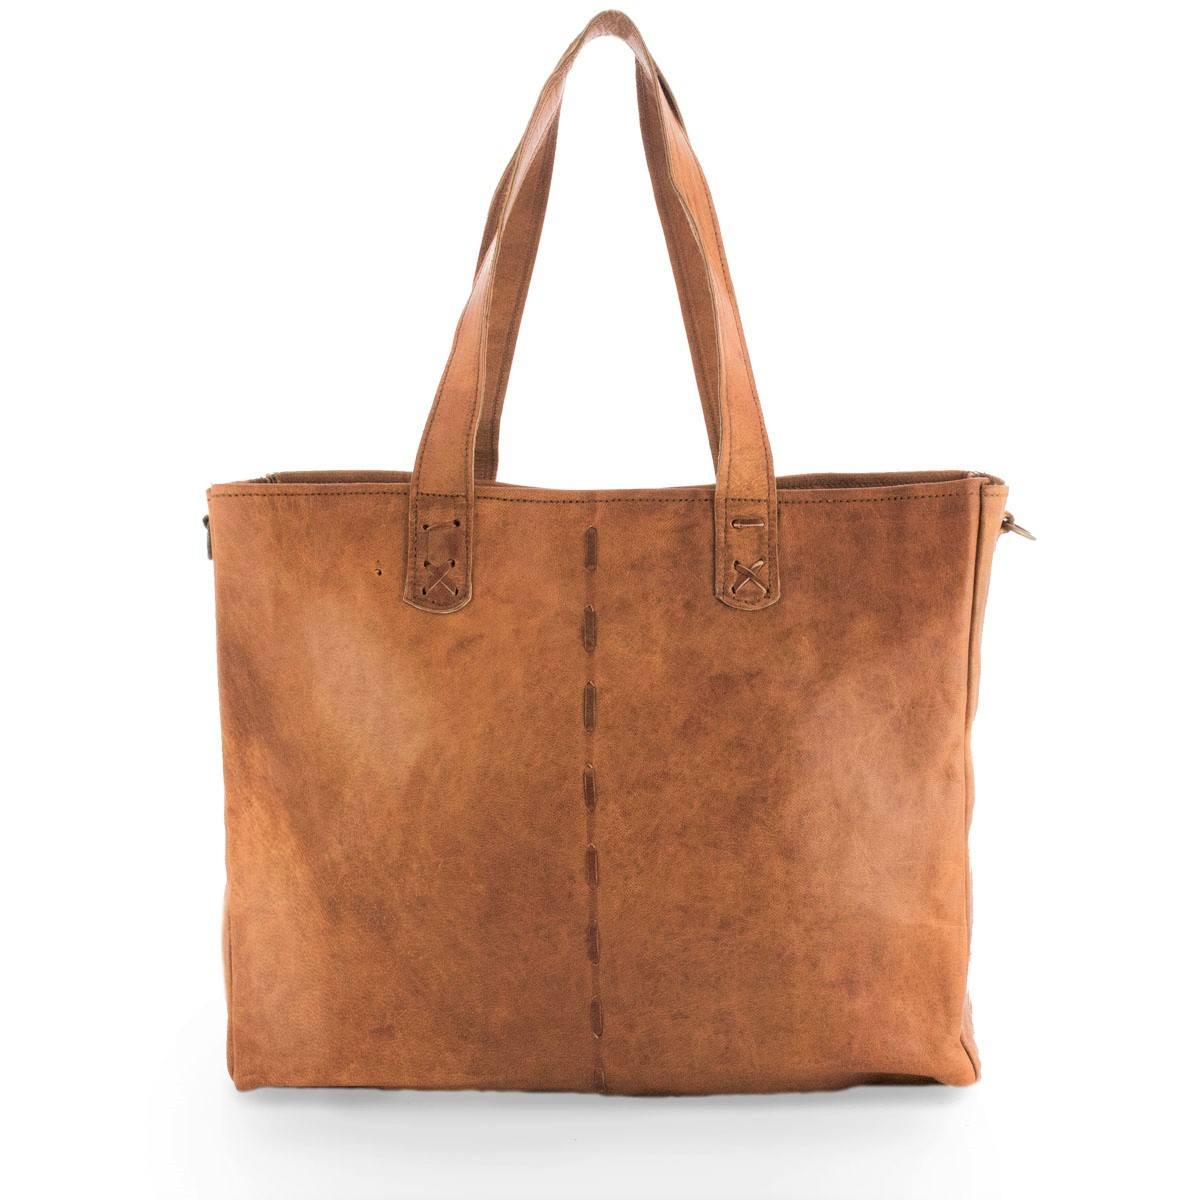 Ganesha Leren Shopper from Bagoa